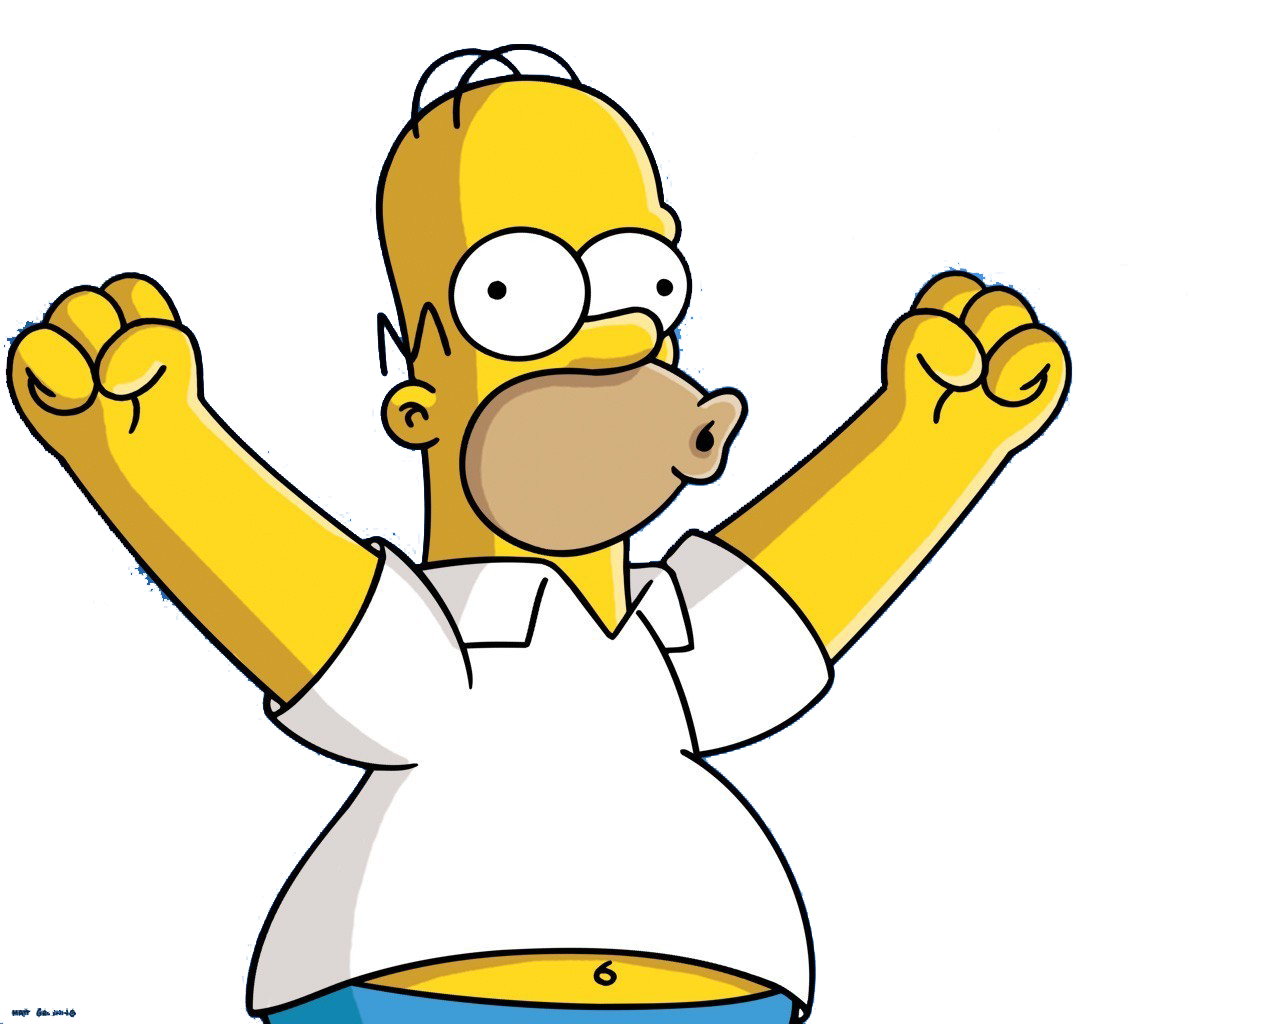 Png imagenes. Simpsons images free download